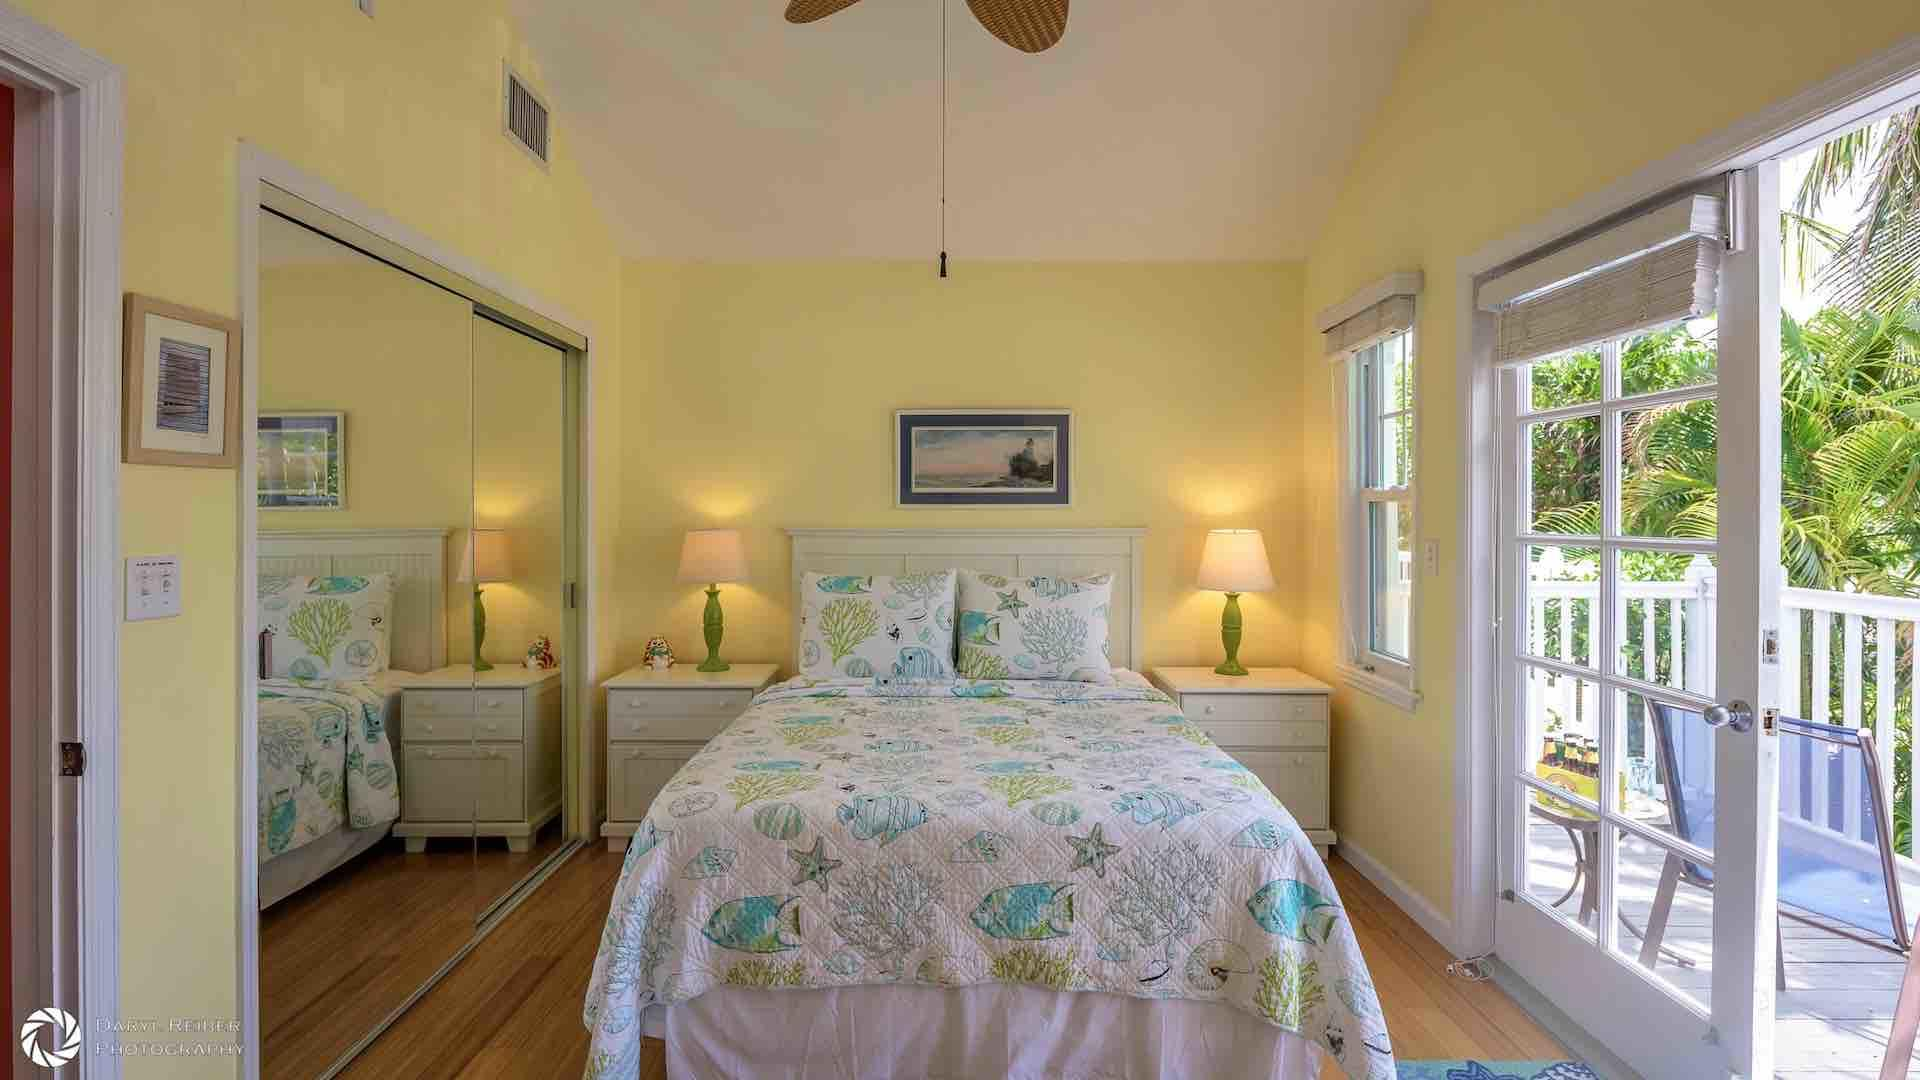 With the French doors open, you will enjoy those tropical breezes day & night...